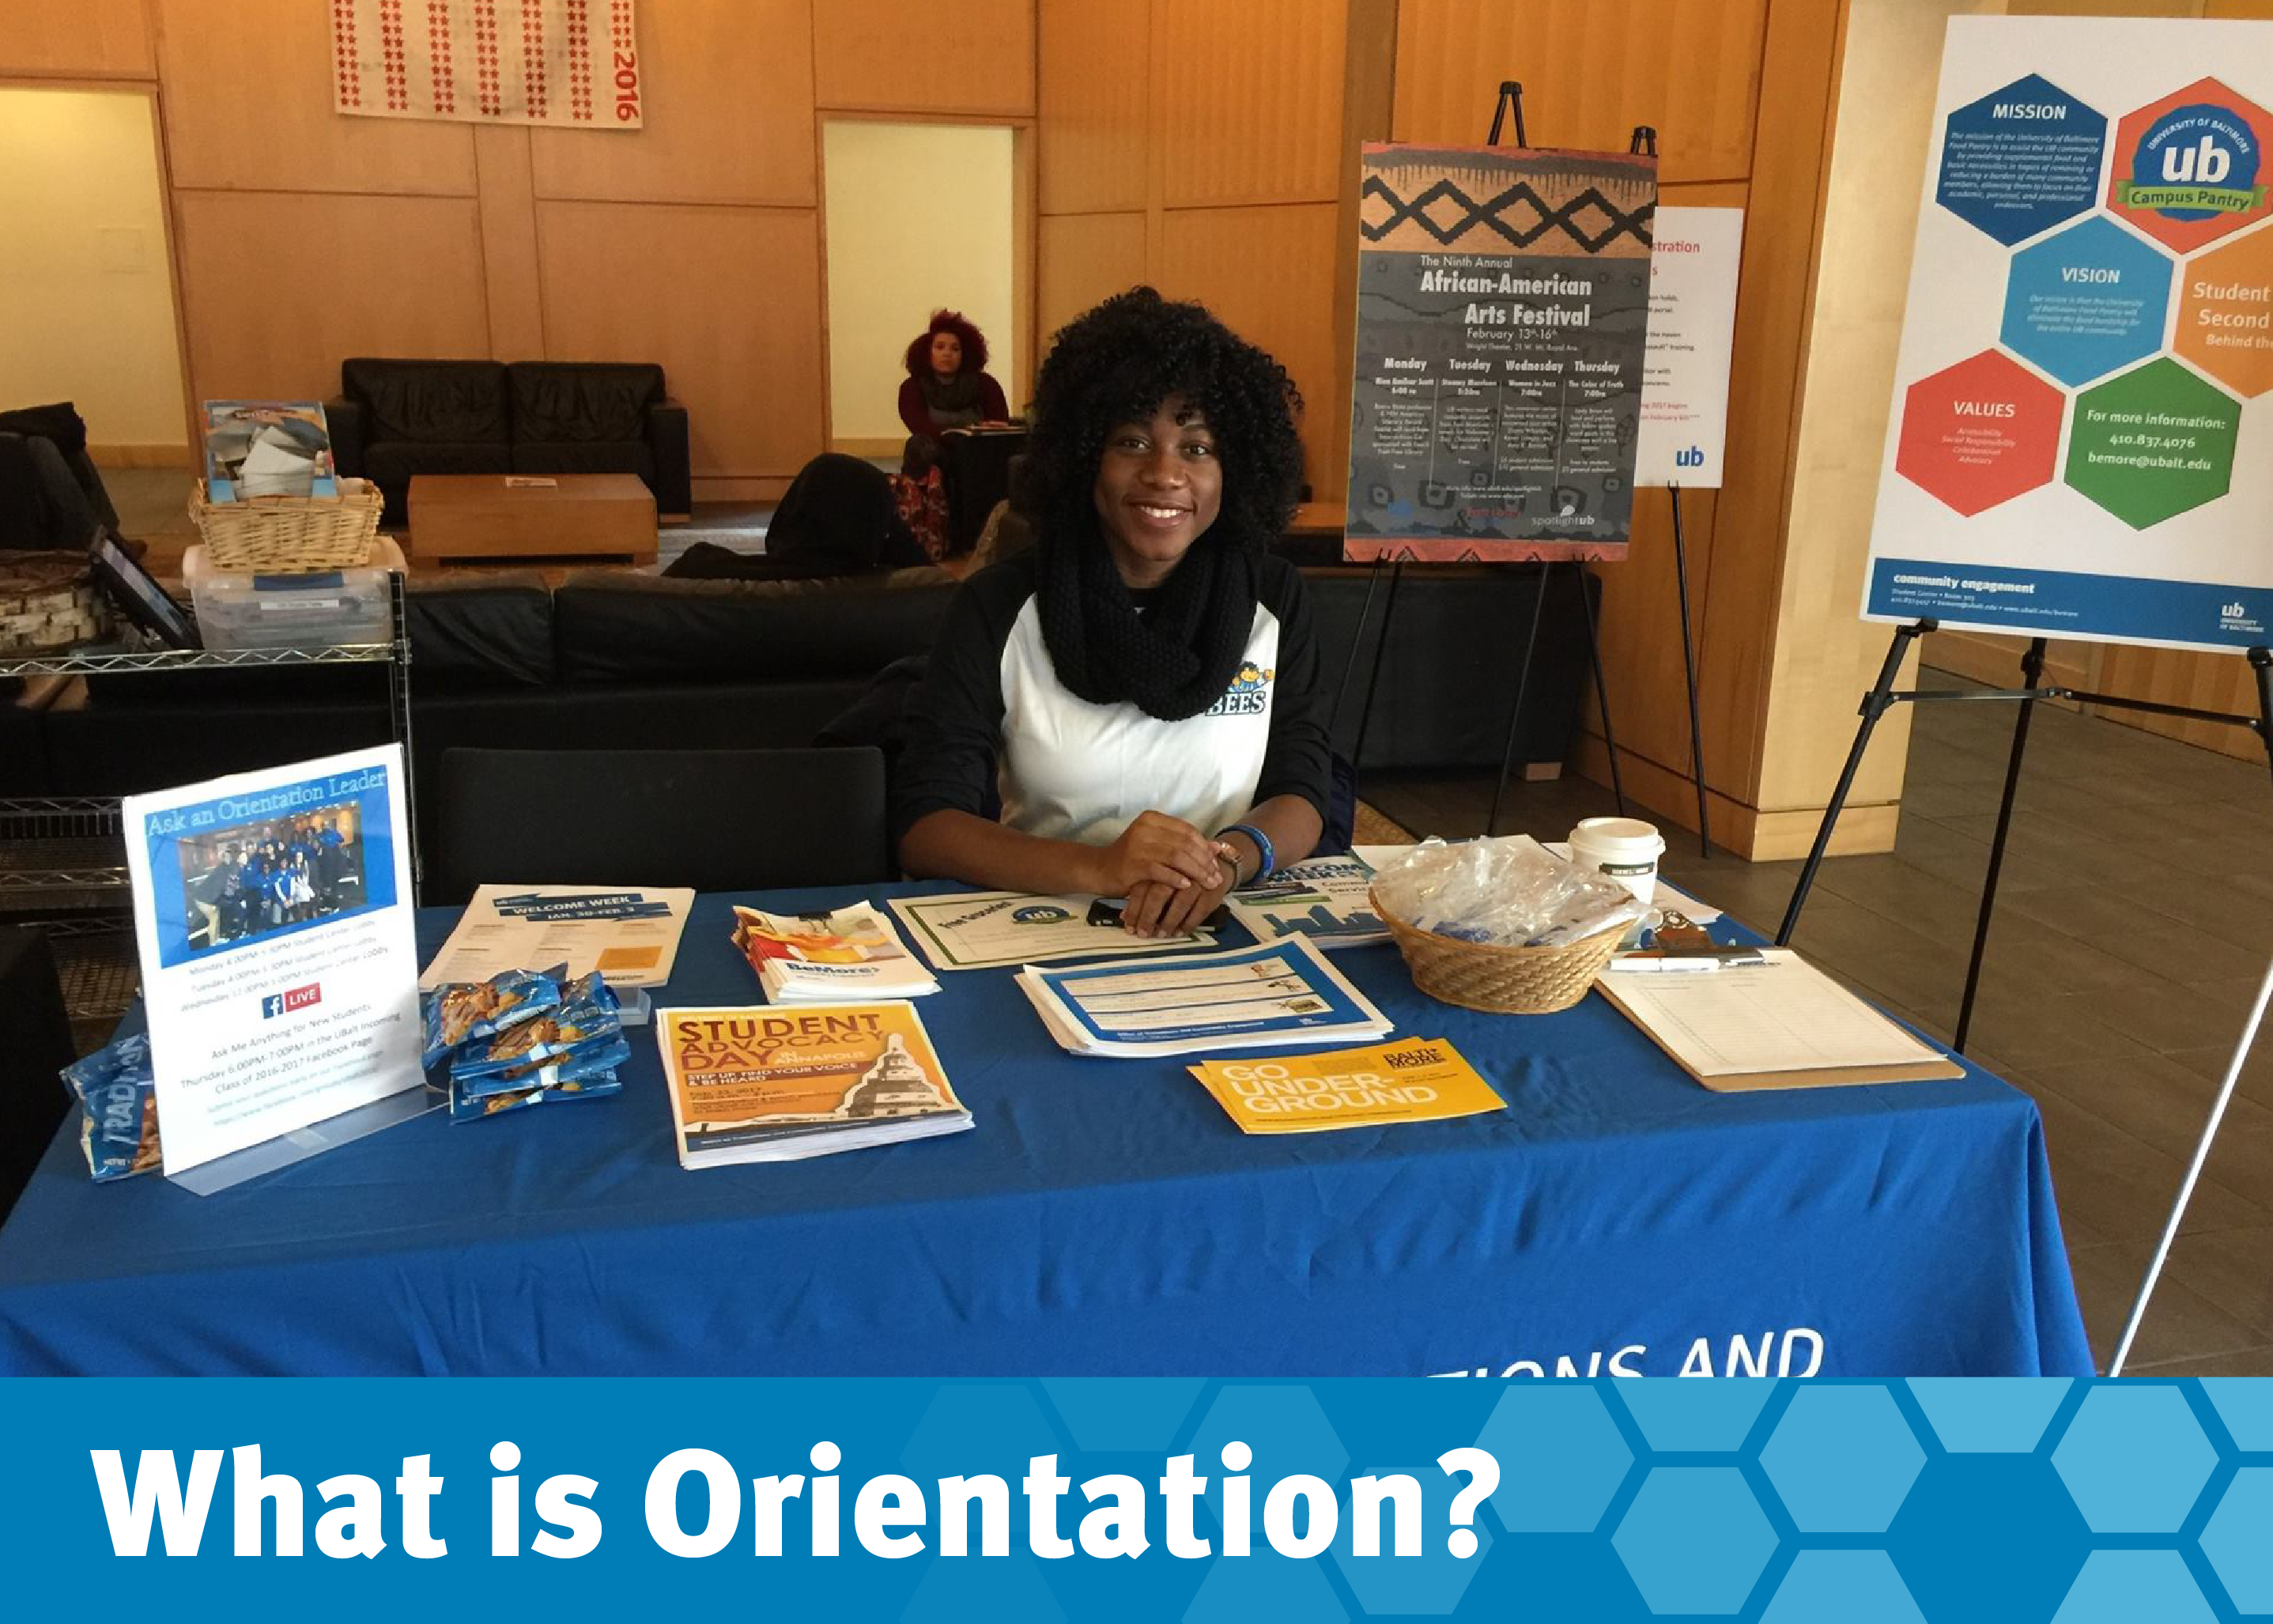 What is Orientation?